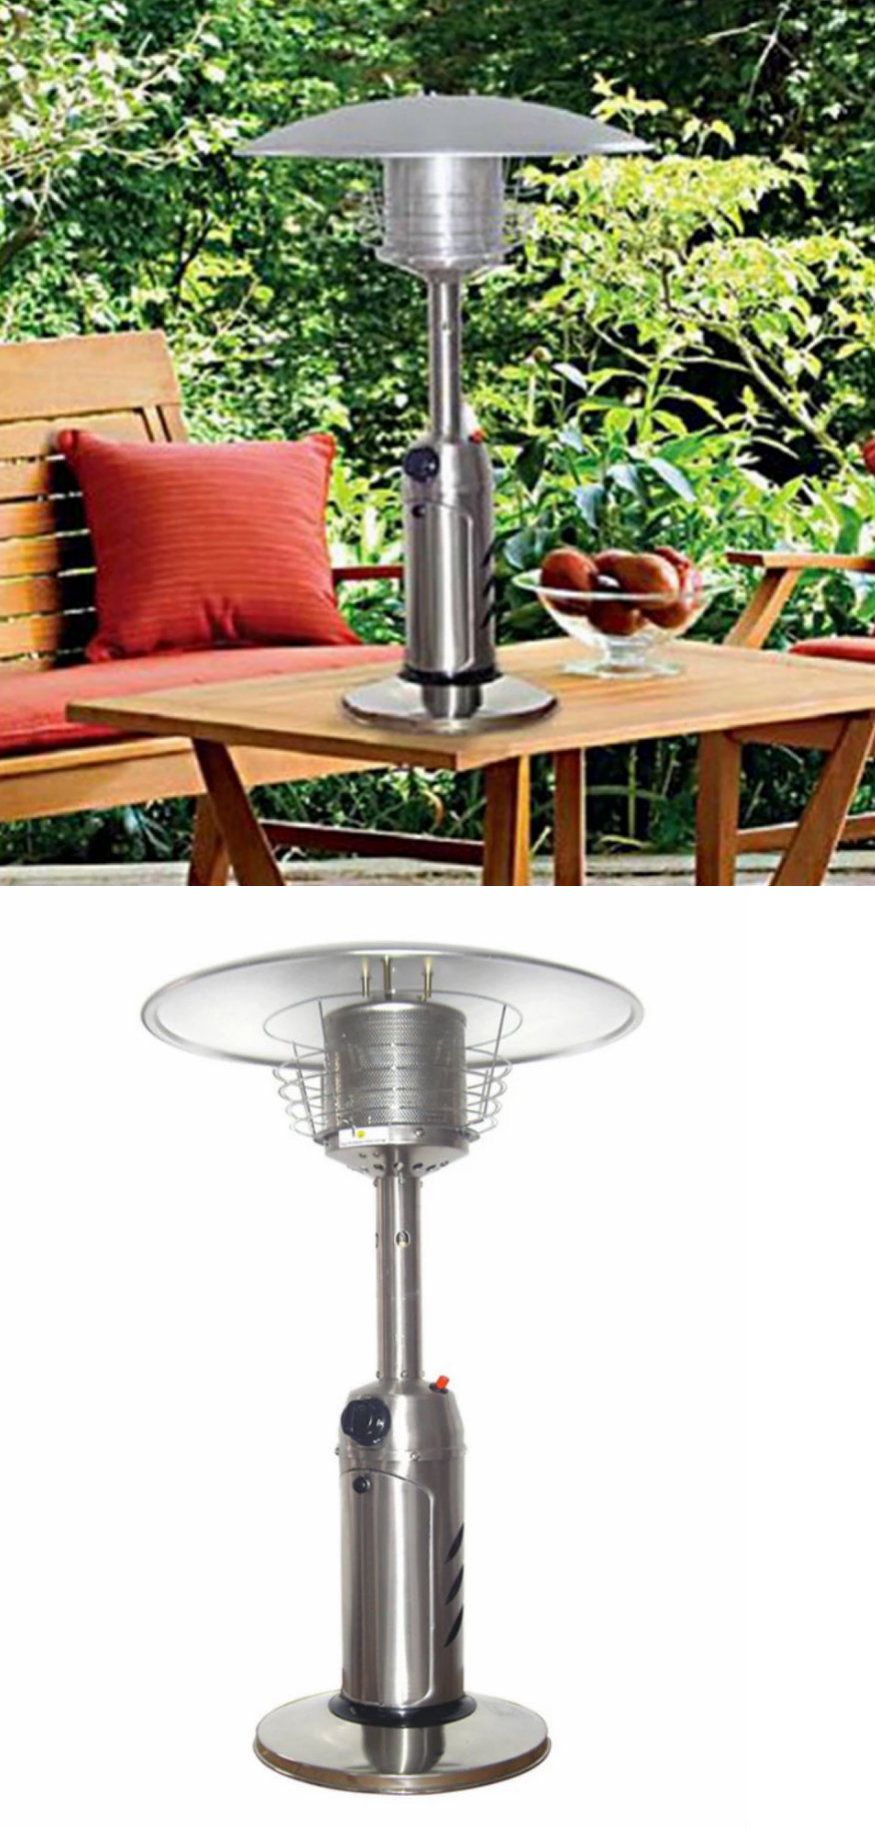 Patio Heaters 106402: Outdoor Table Top Portable Patio Heater Stainless  Steel 3 Ft Propane